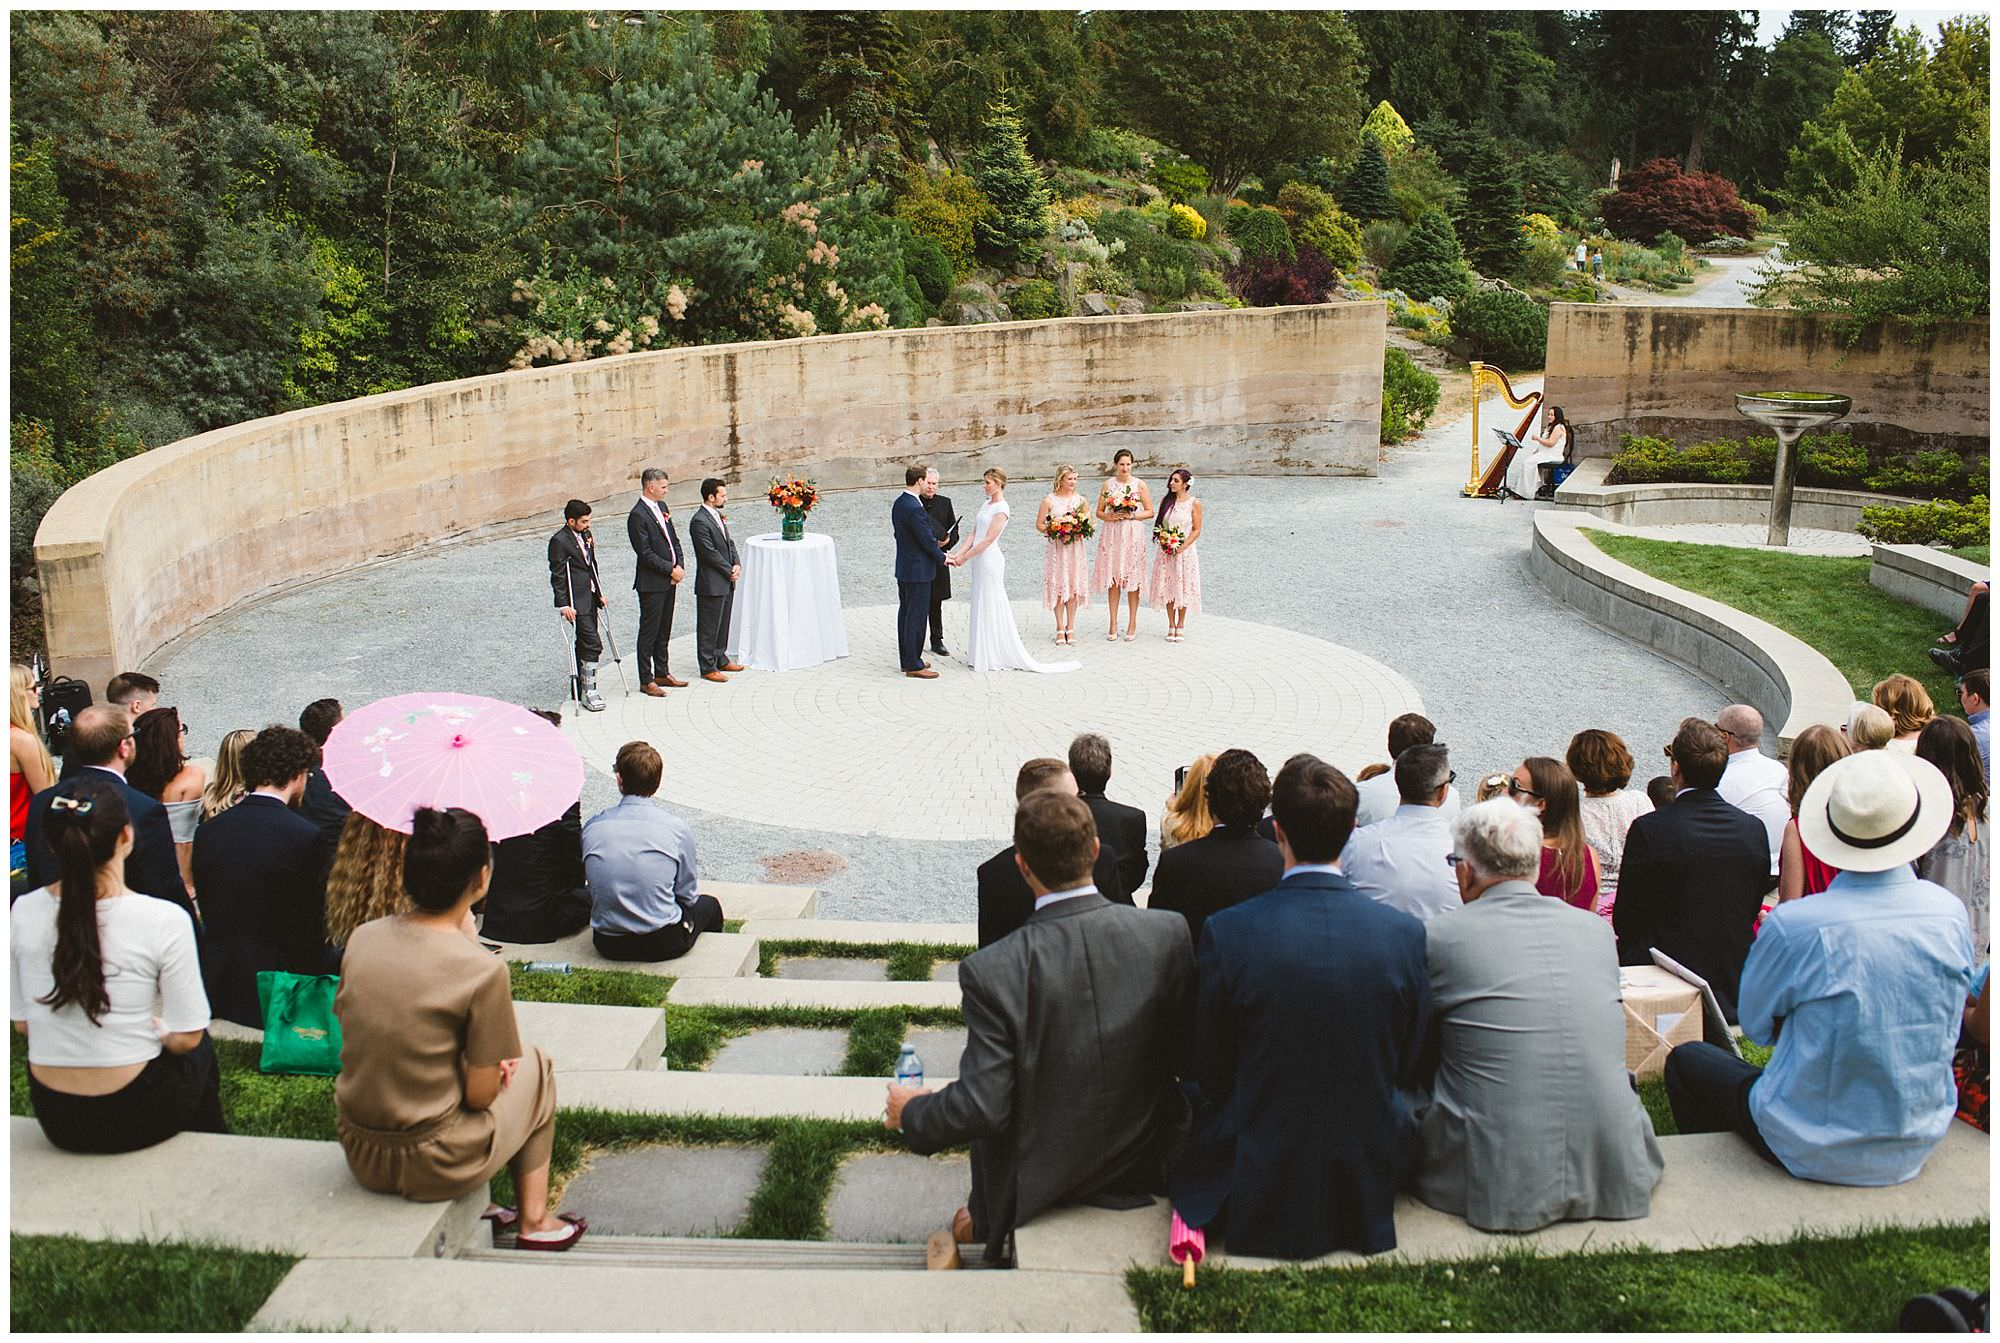 view of outdoor wedding ceremony at Roseline Sturdy amphitheatre UBC